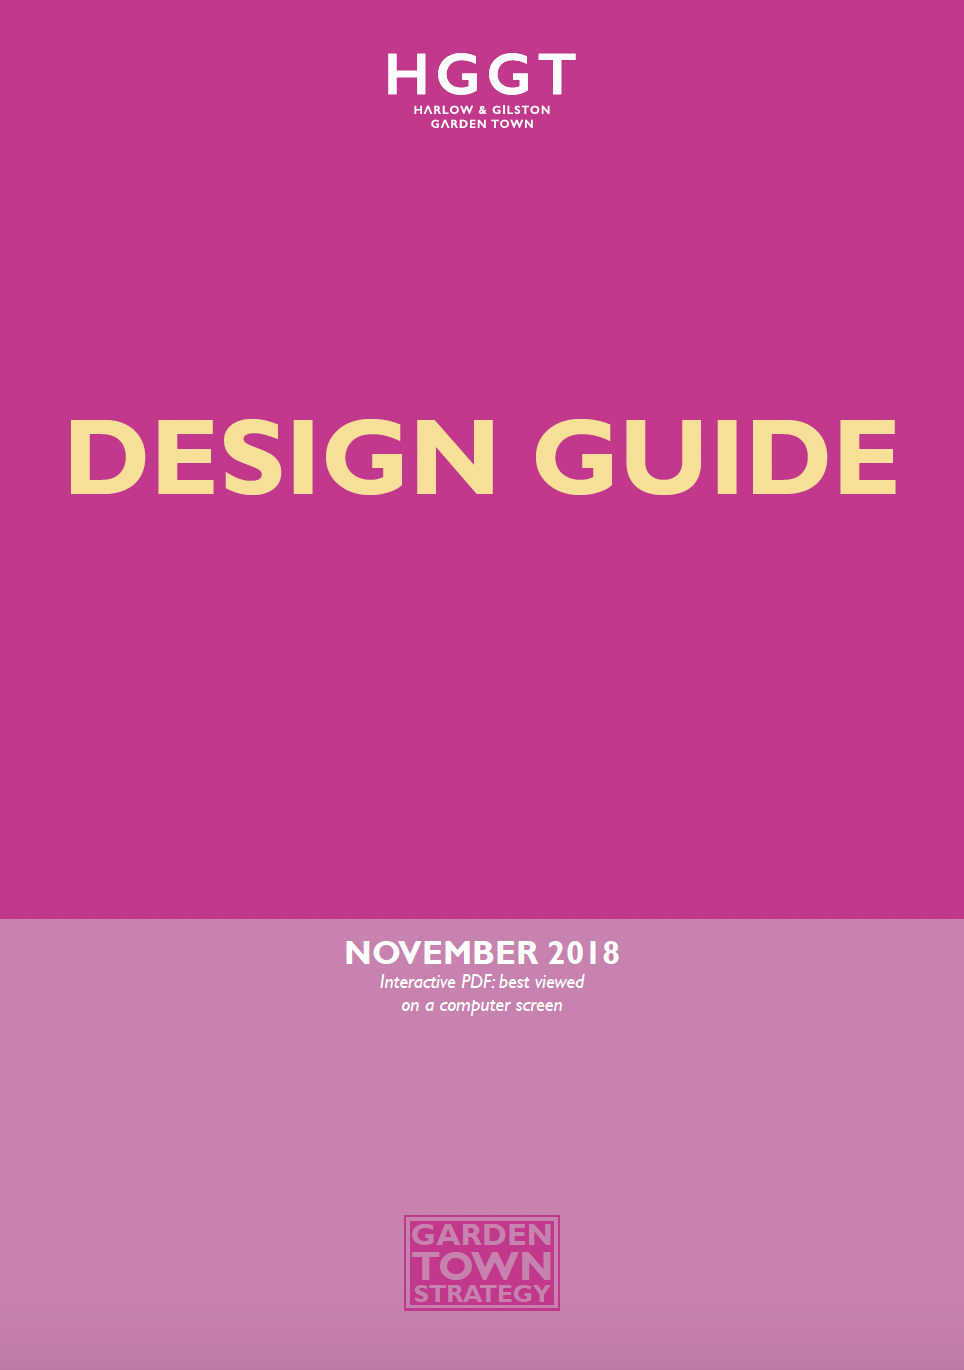 HGGT Design guide 2018 front page